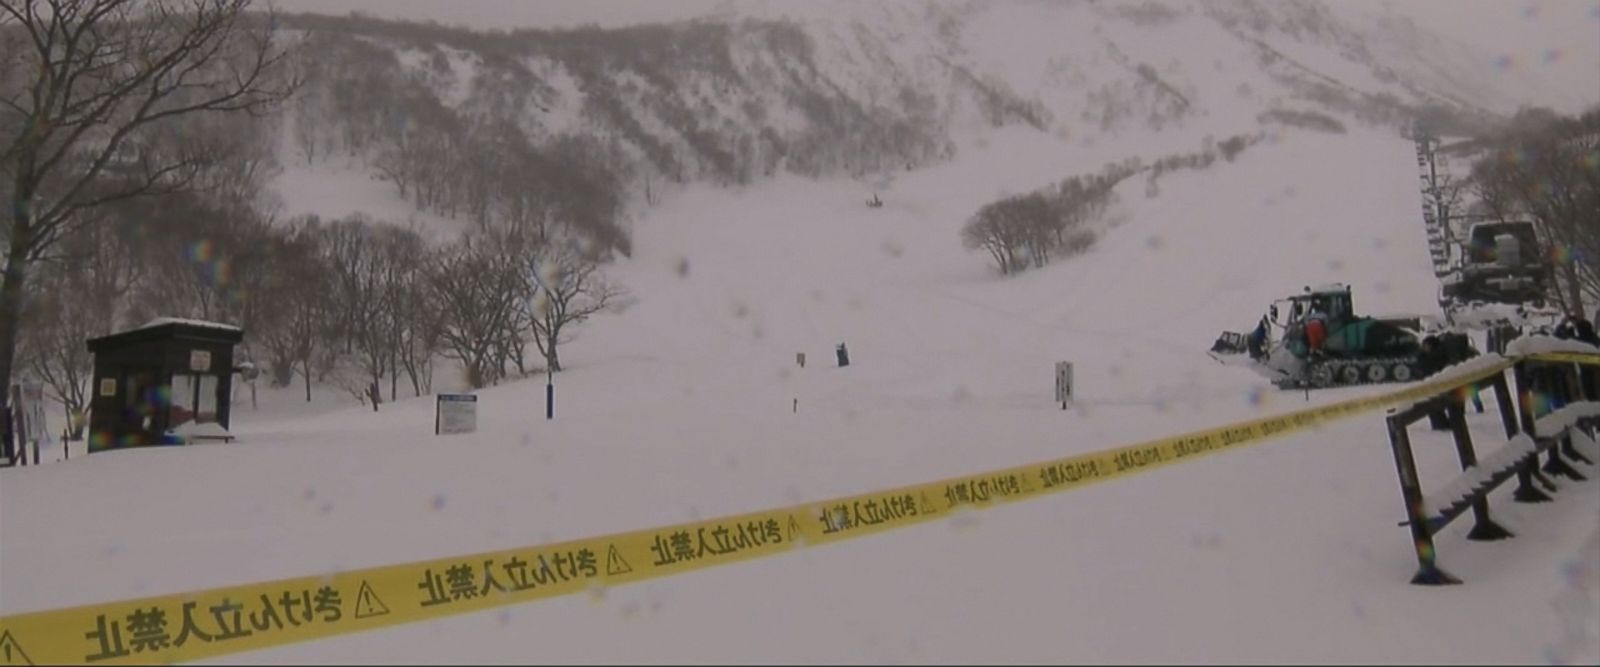 VIDEO: An avalanche at a ski resort in Japan hit several high school students.